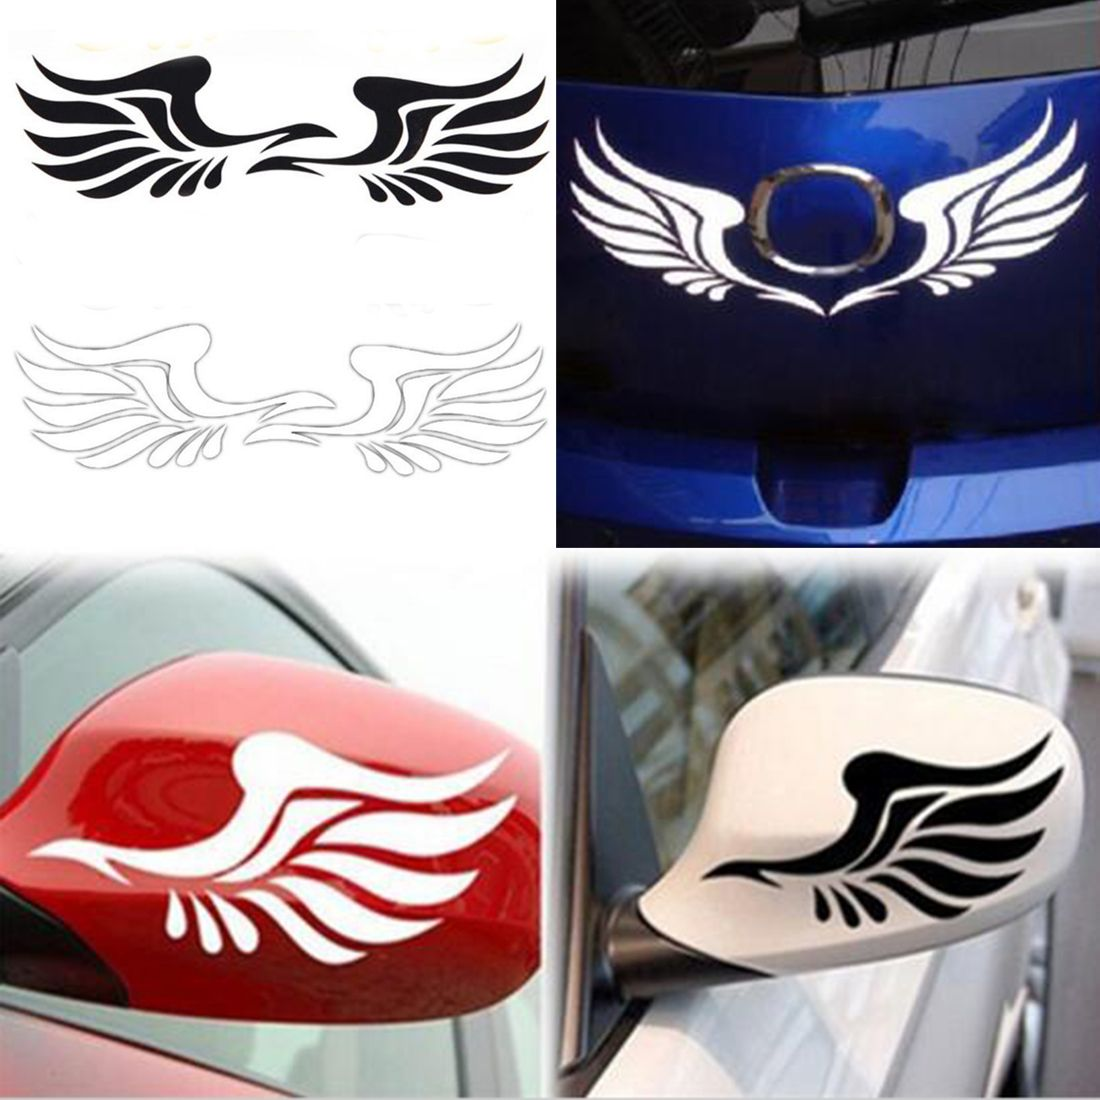 2pcs New Design Personality Fire Wings Side Mirror Car Stickers Decorative Stickers Free Shipping In Stickers Car Mirror Sticker Side Mirror Car Sticker Decor [ 1100 x 1100 Pixel ]